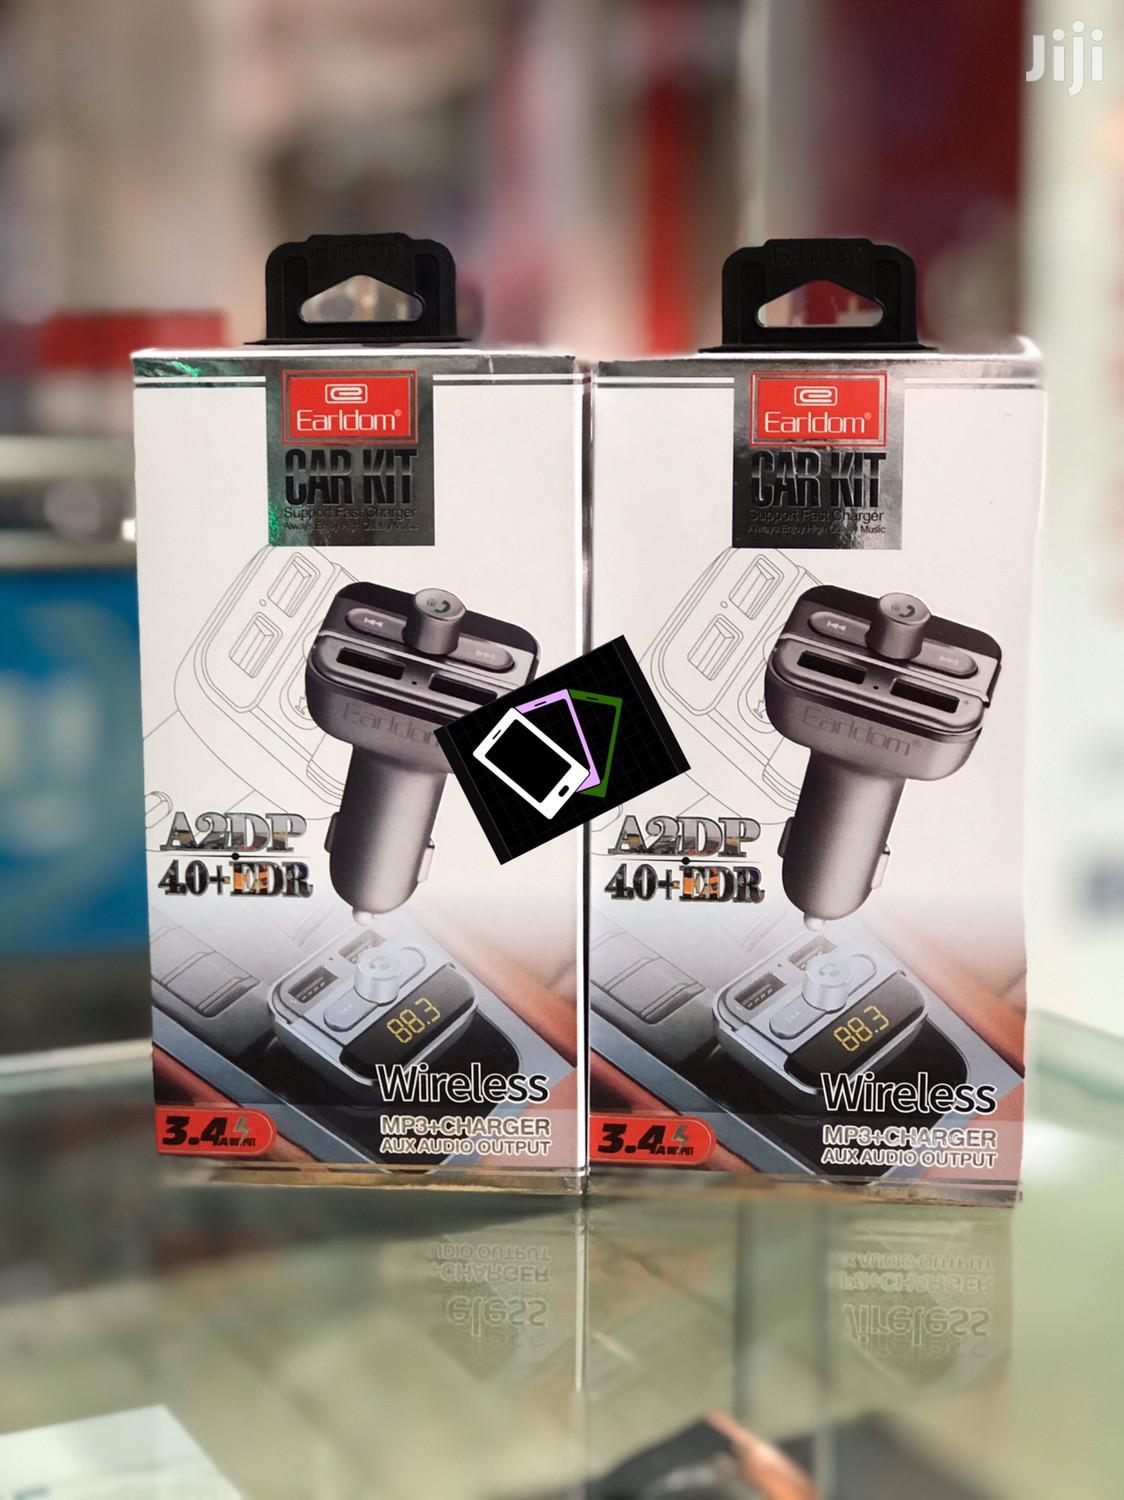 New Earldom Bluetooth Mojulator | Accessories for Mobile Phones & Tablets for sale in Ilala, Dar es Salaam, Tanzania